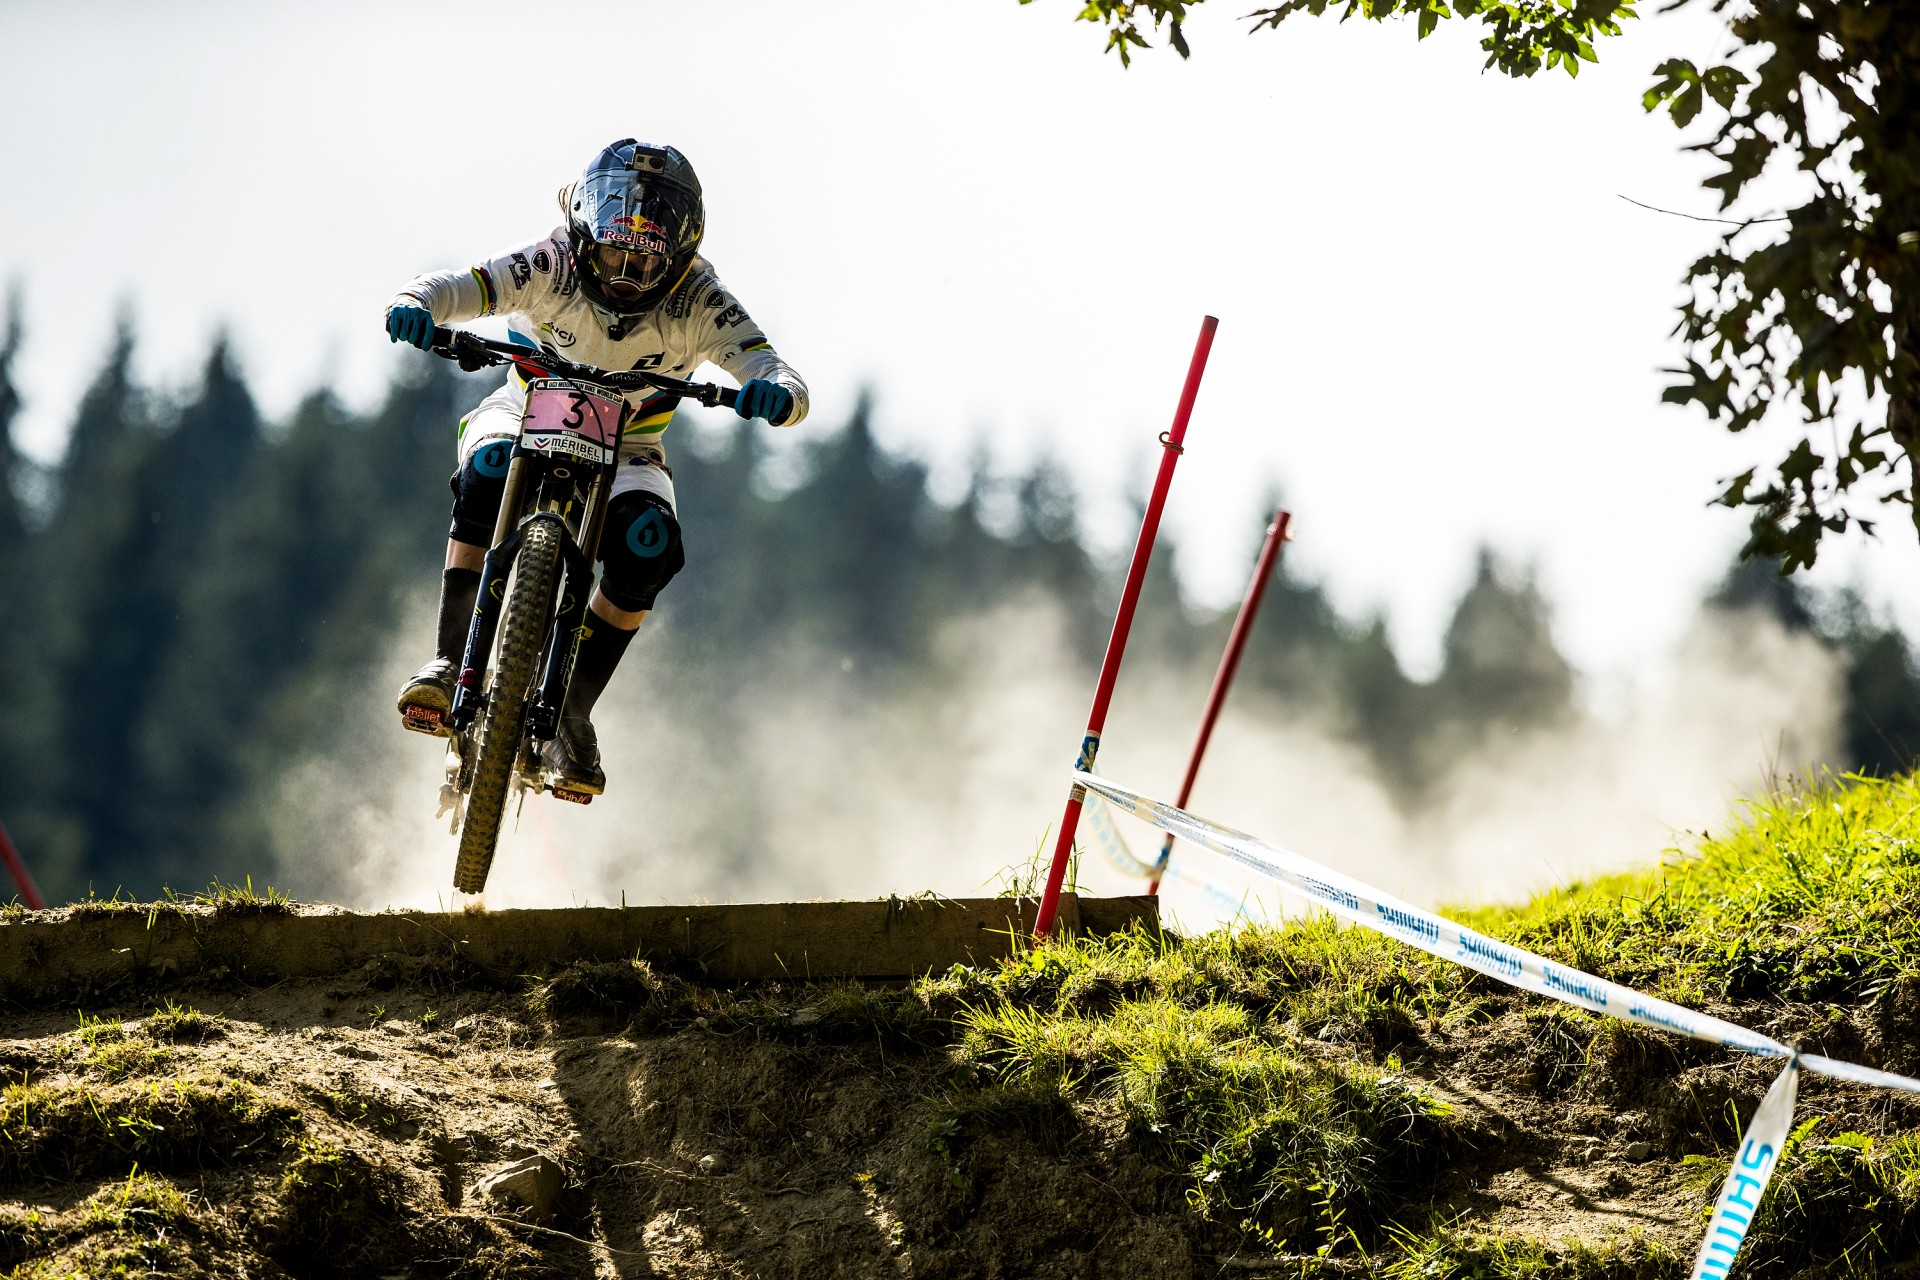 [PR] UCI MTB World Cup presented by Shimano na żywo w Red Bull TV